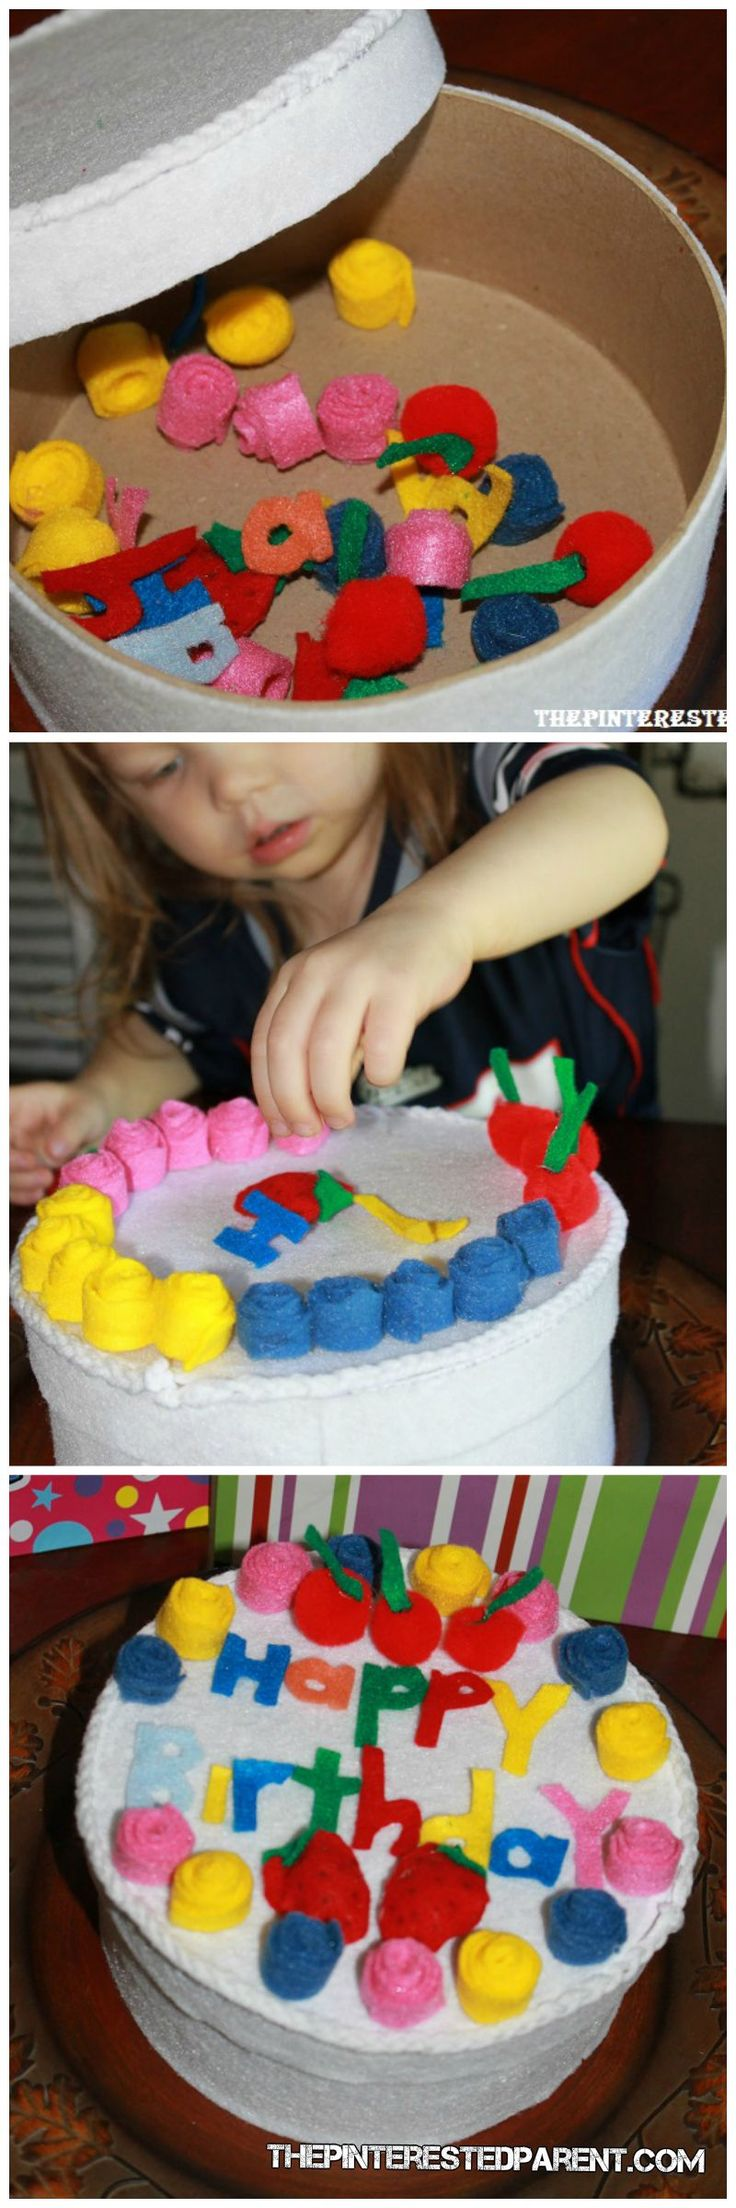 Felt Birthday Cake for toddler play- made out of a plain hatbox